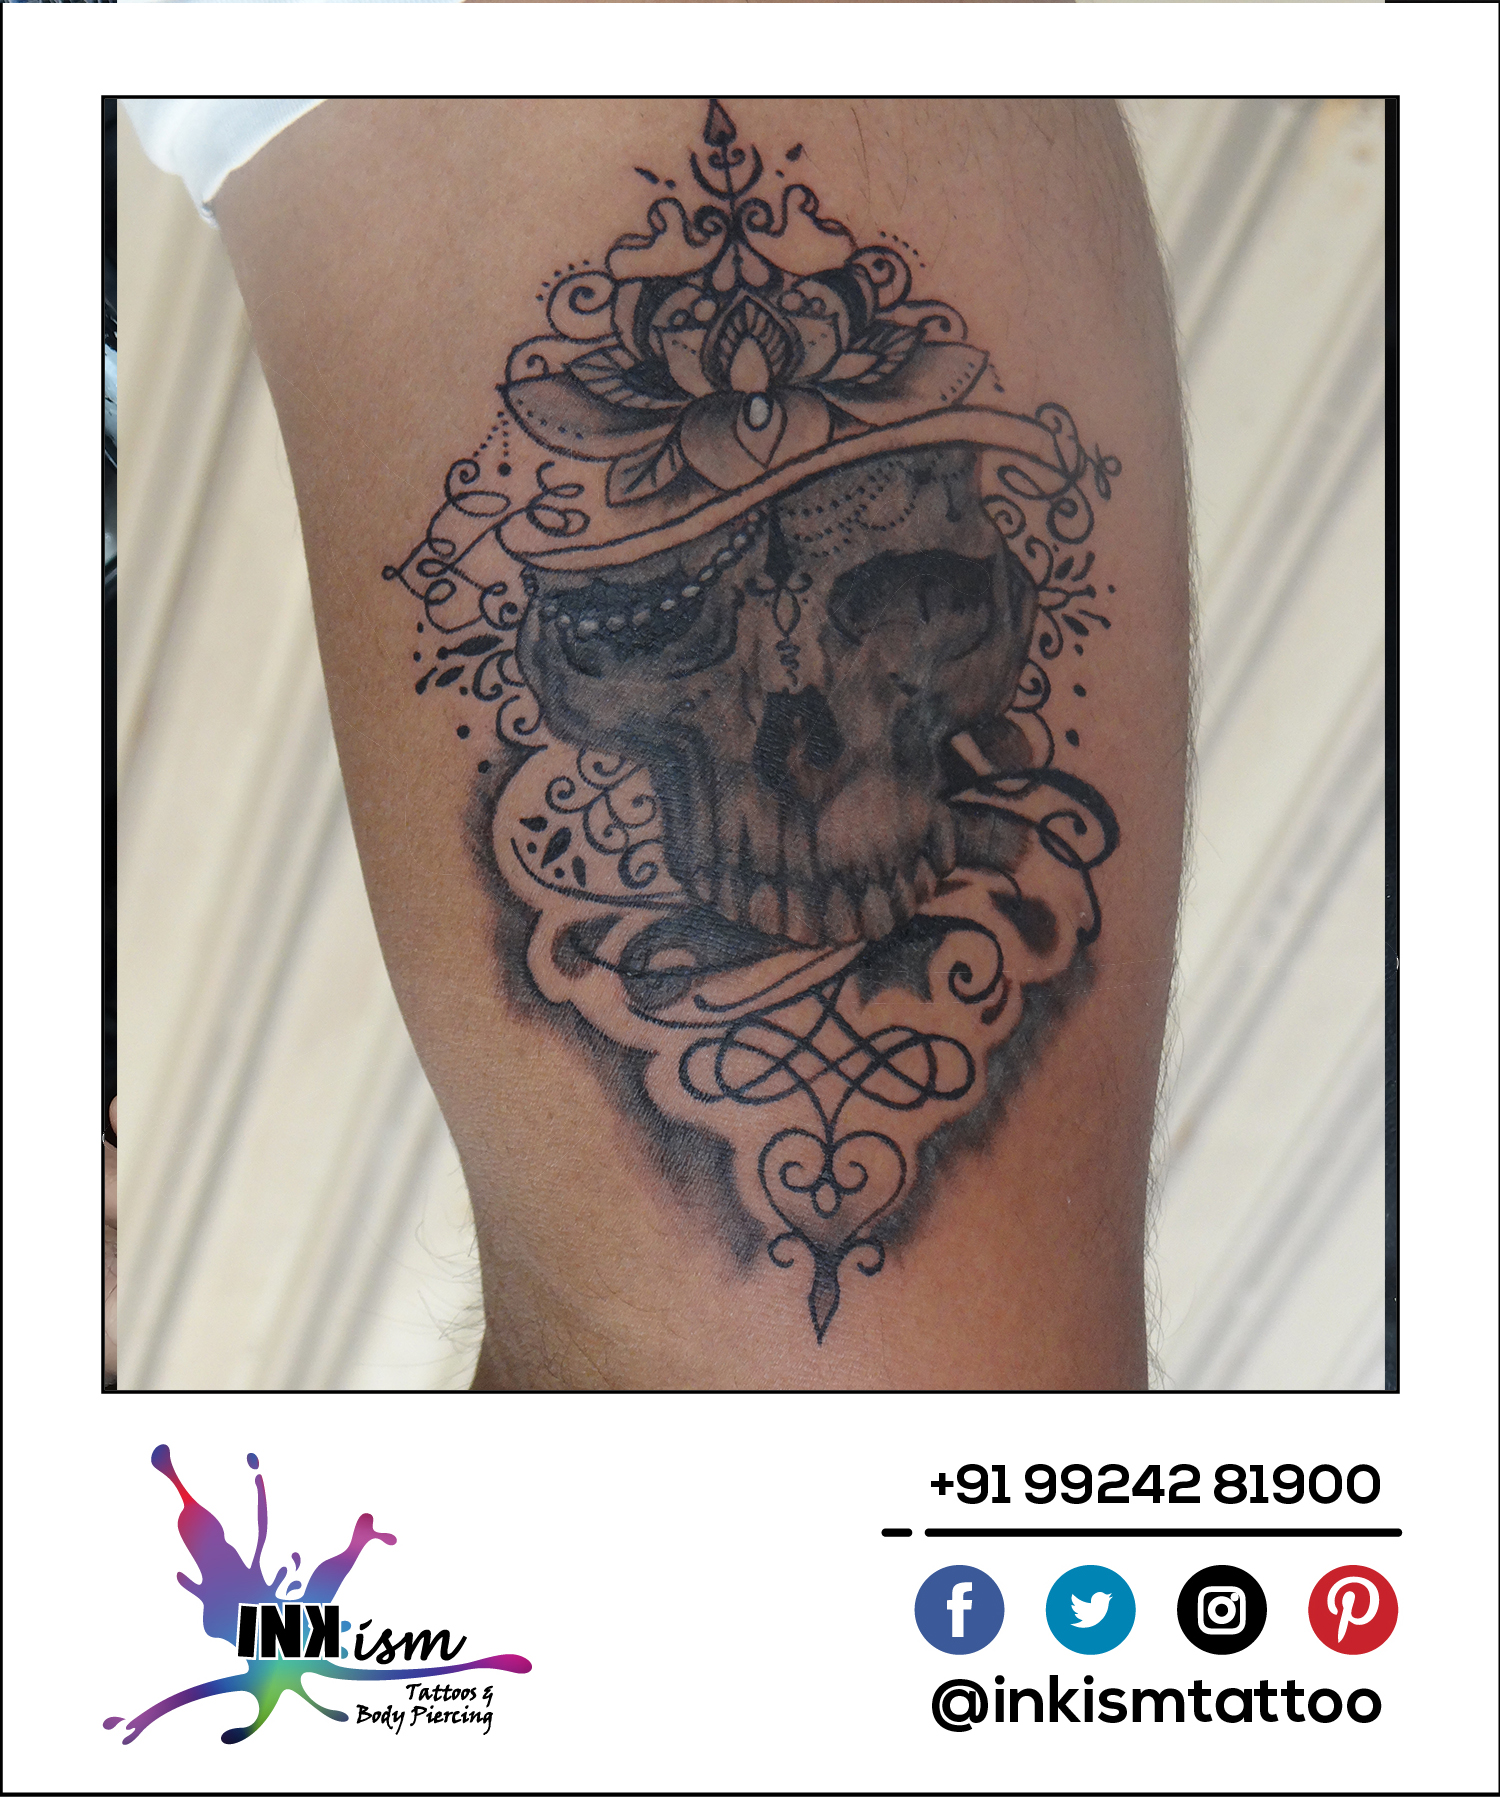 Grey wash tattoo, Skull tattoo, Lotus tattoo, Swirls Tattoo, Inkism tattoo and body piercing rajkot gujarat